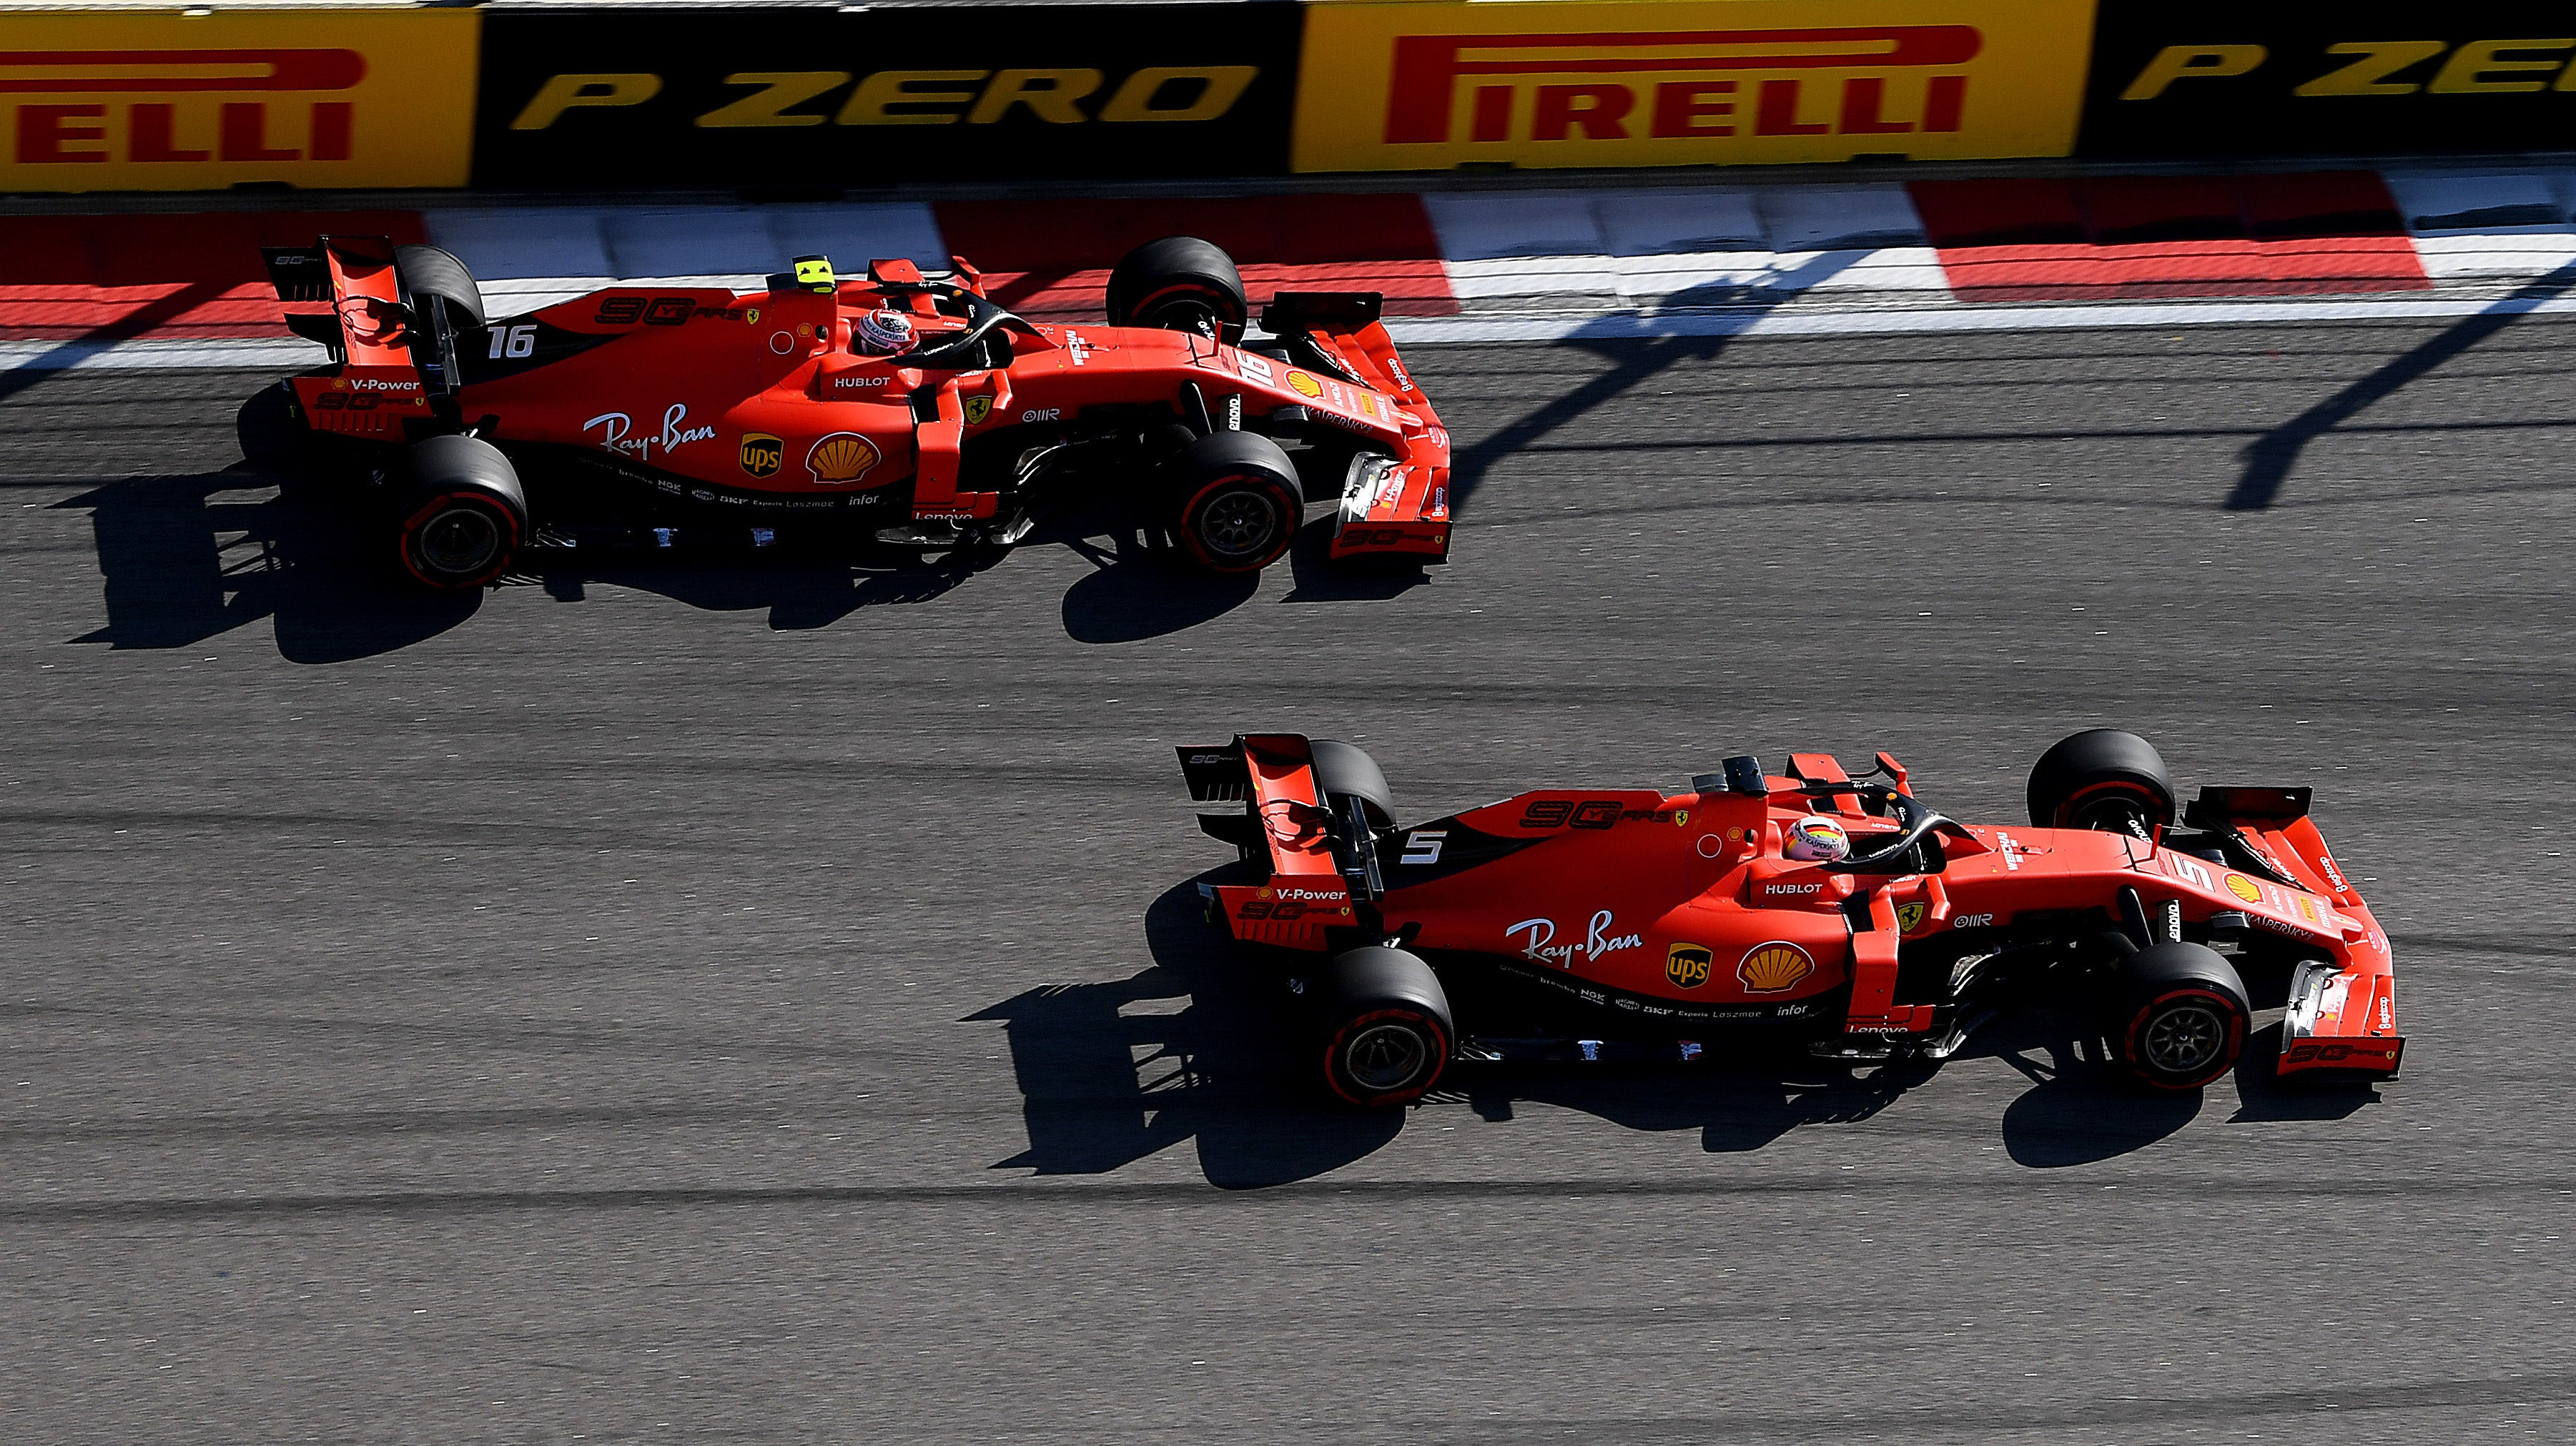 How To Lose A Formula One Championship, As Told By Ferrari